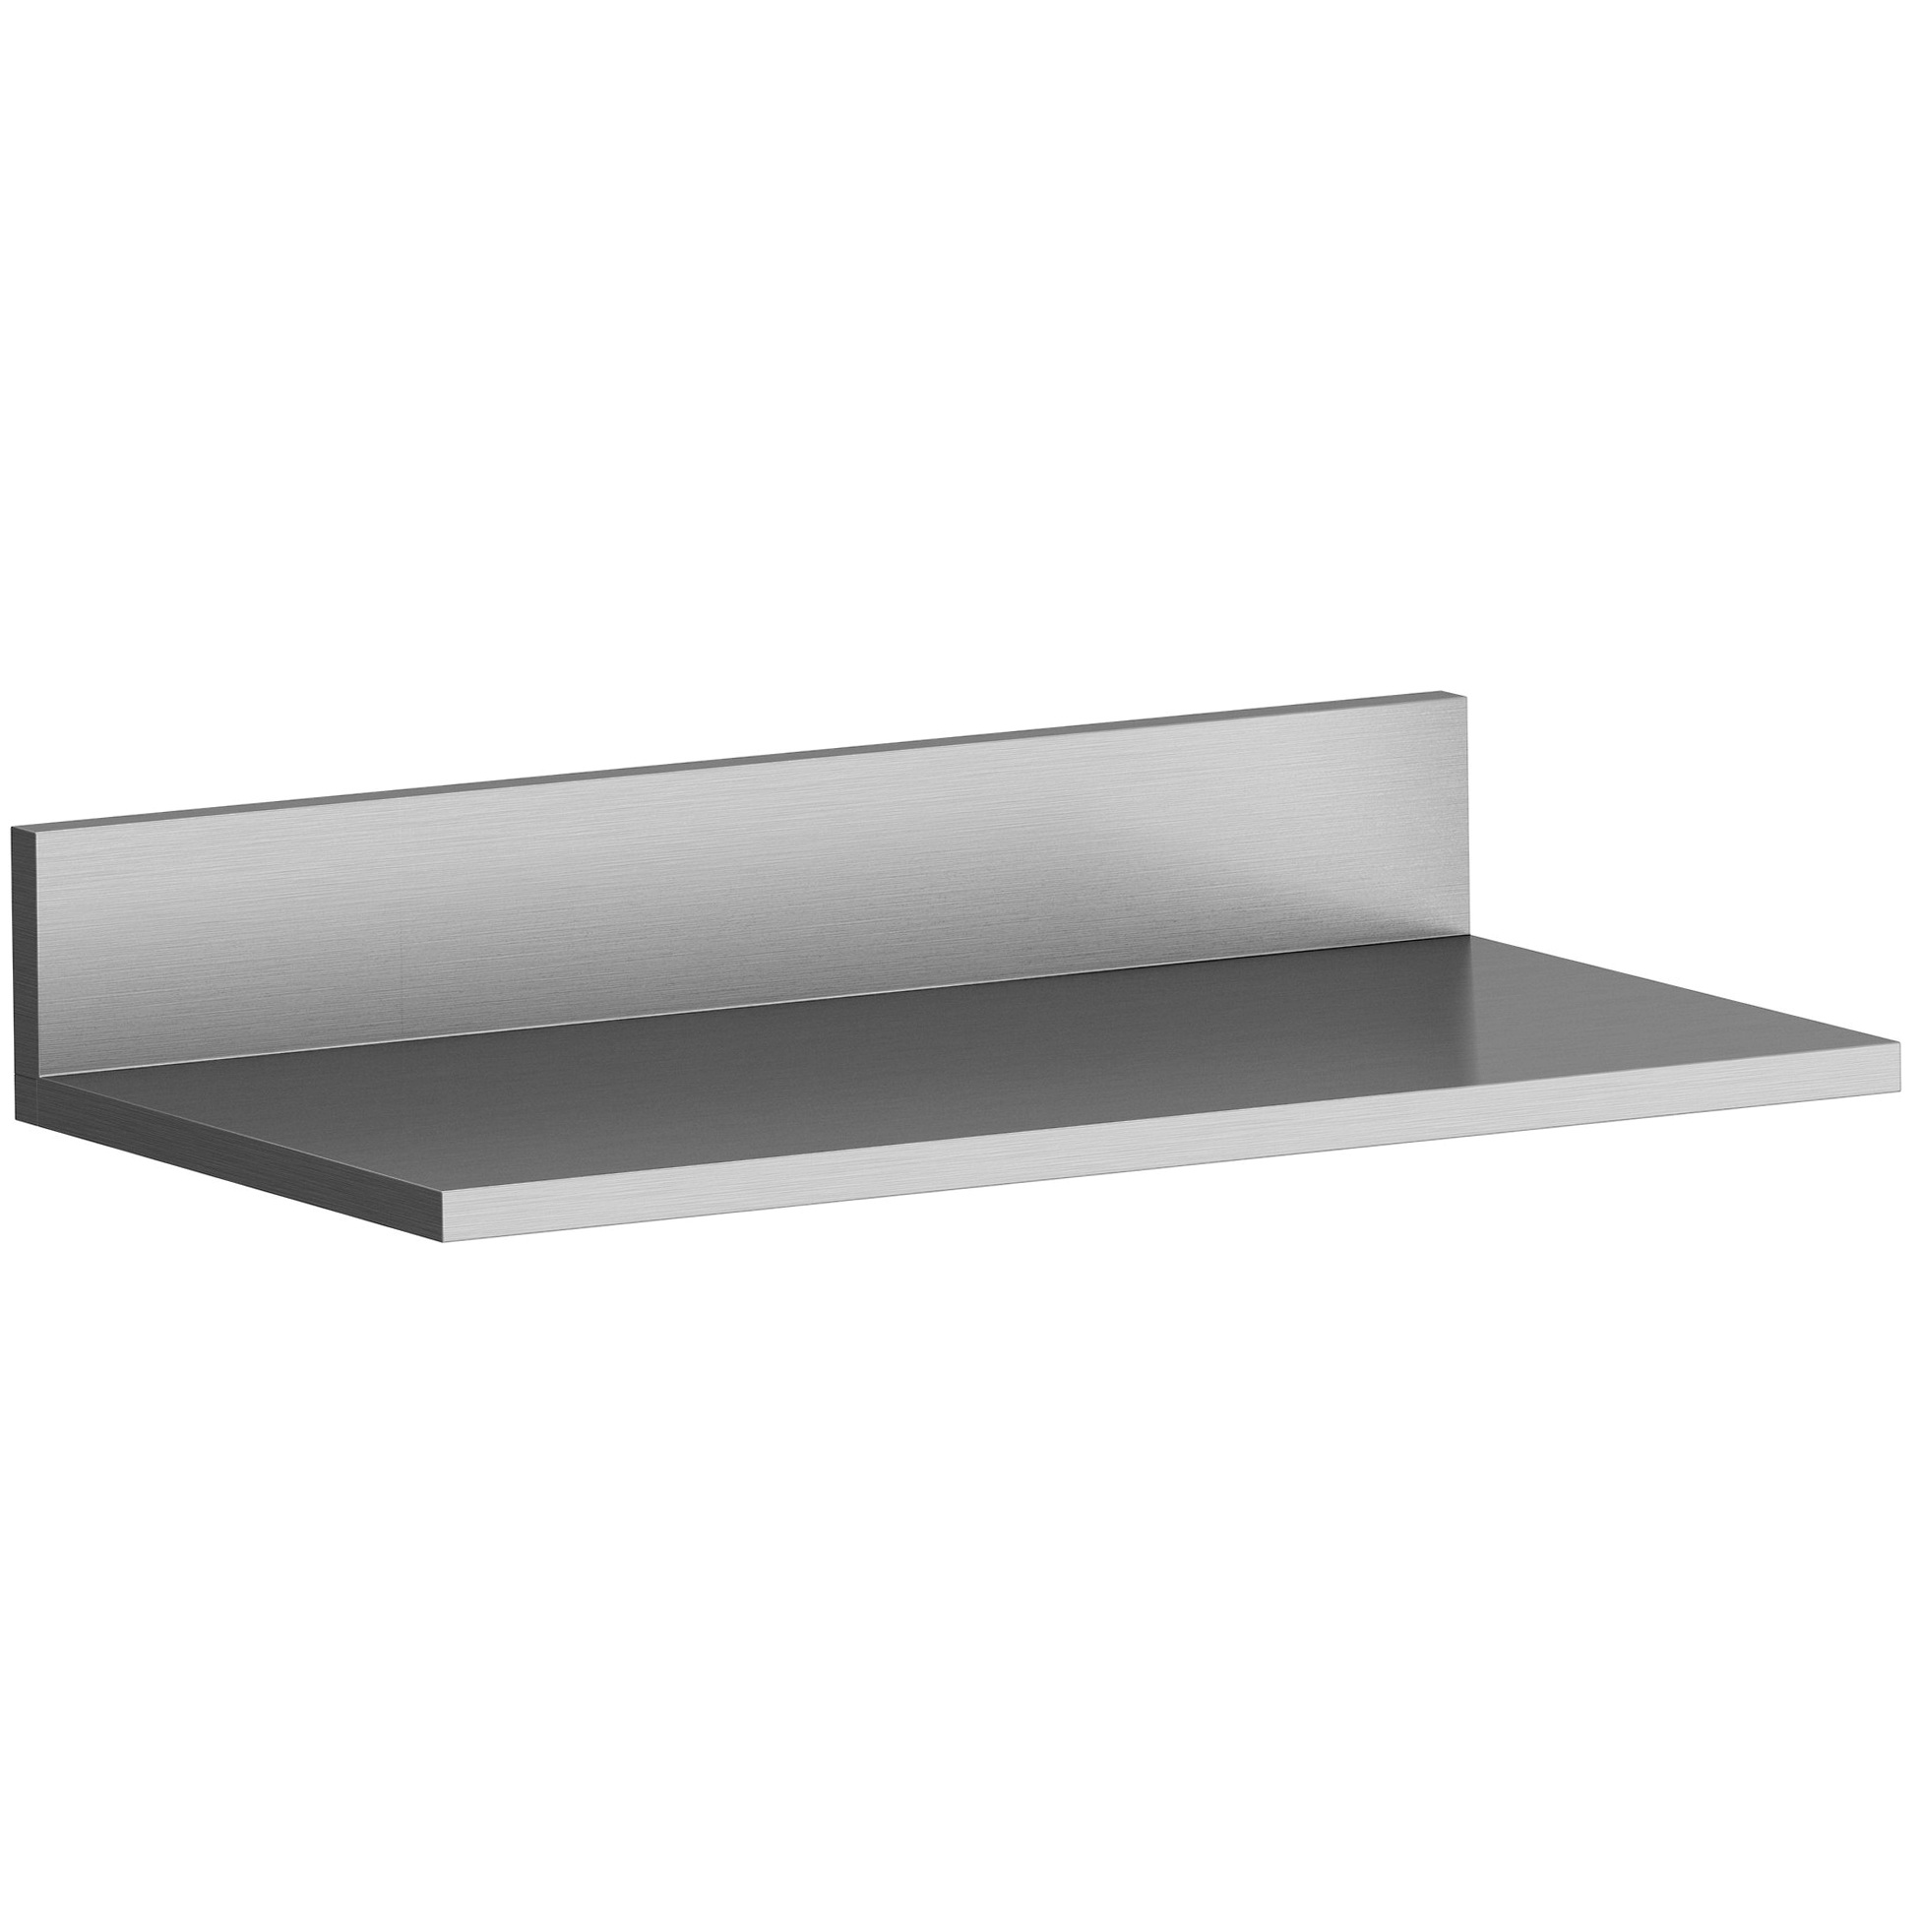 Stainless Steel Wall Shelf Ikea